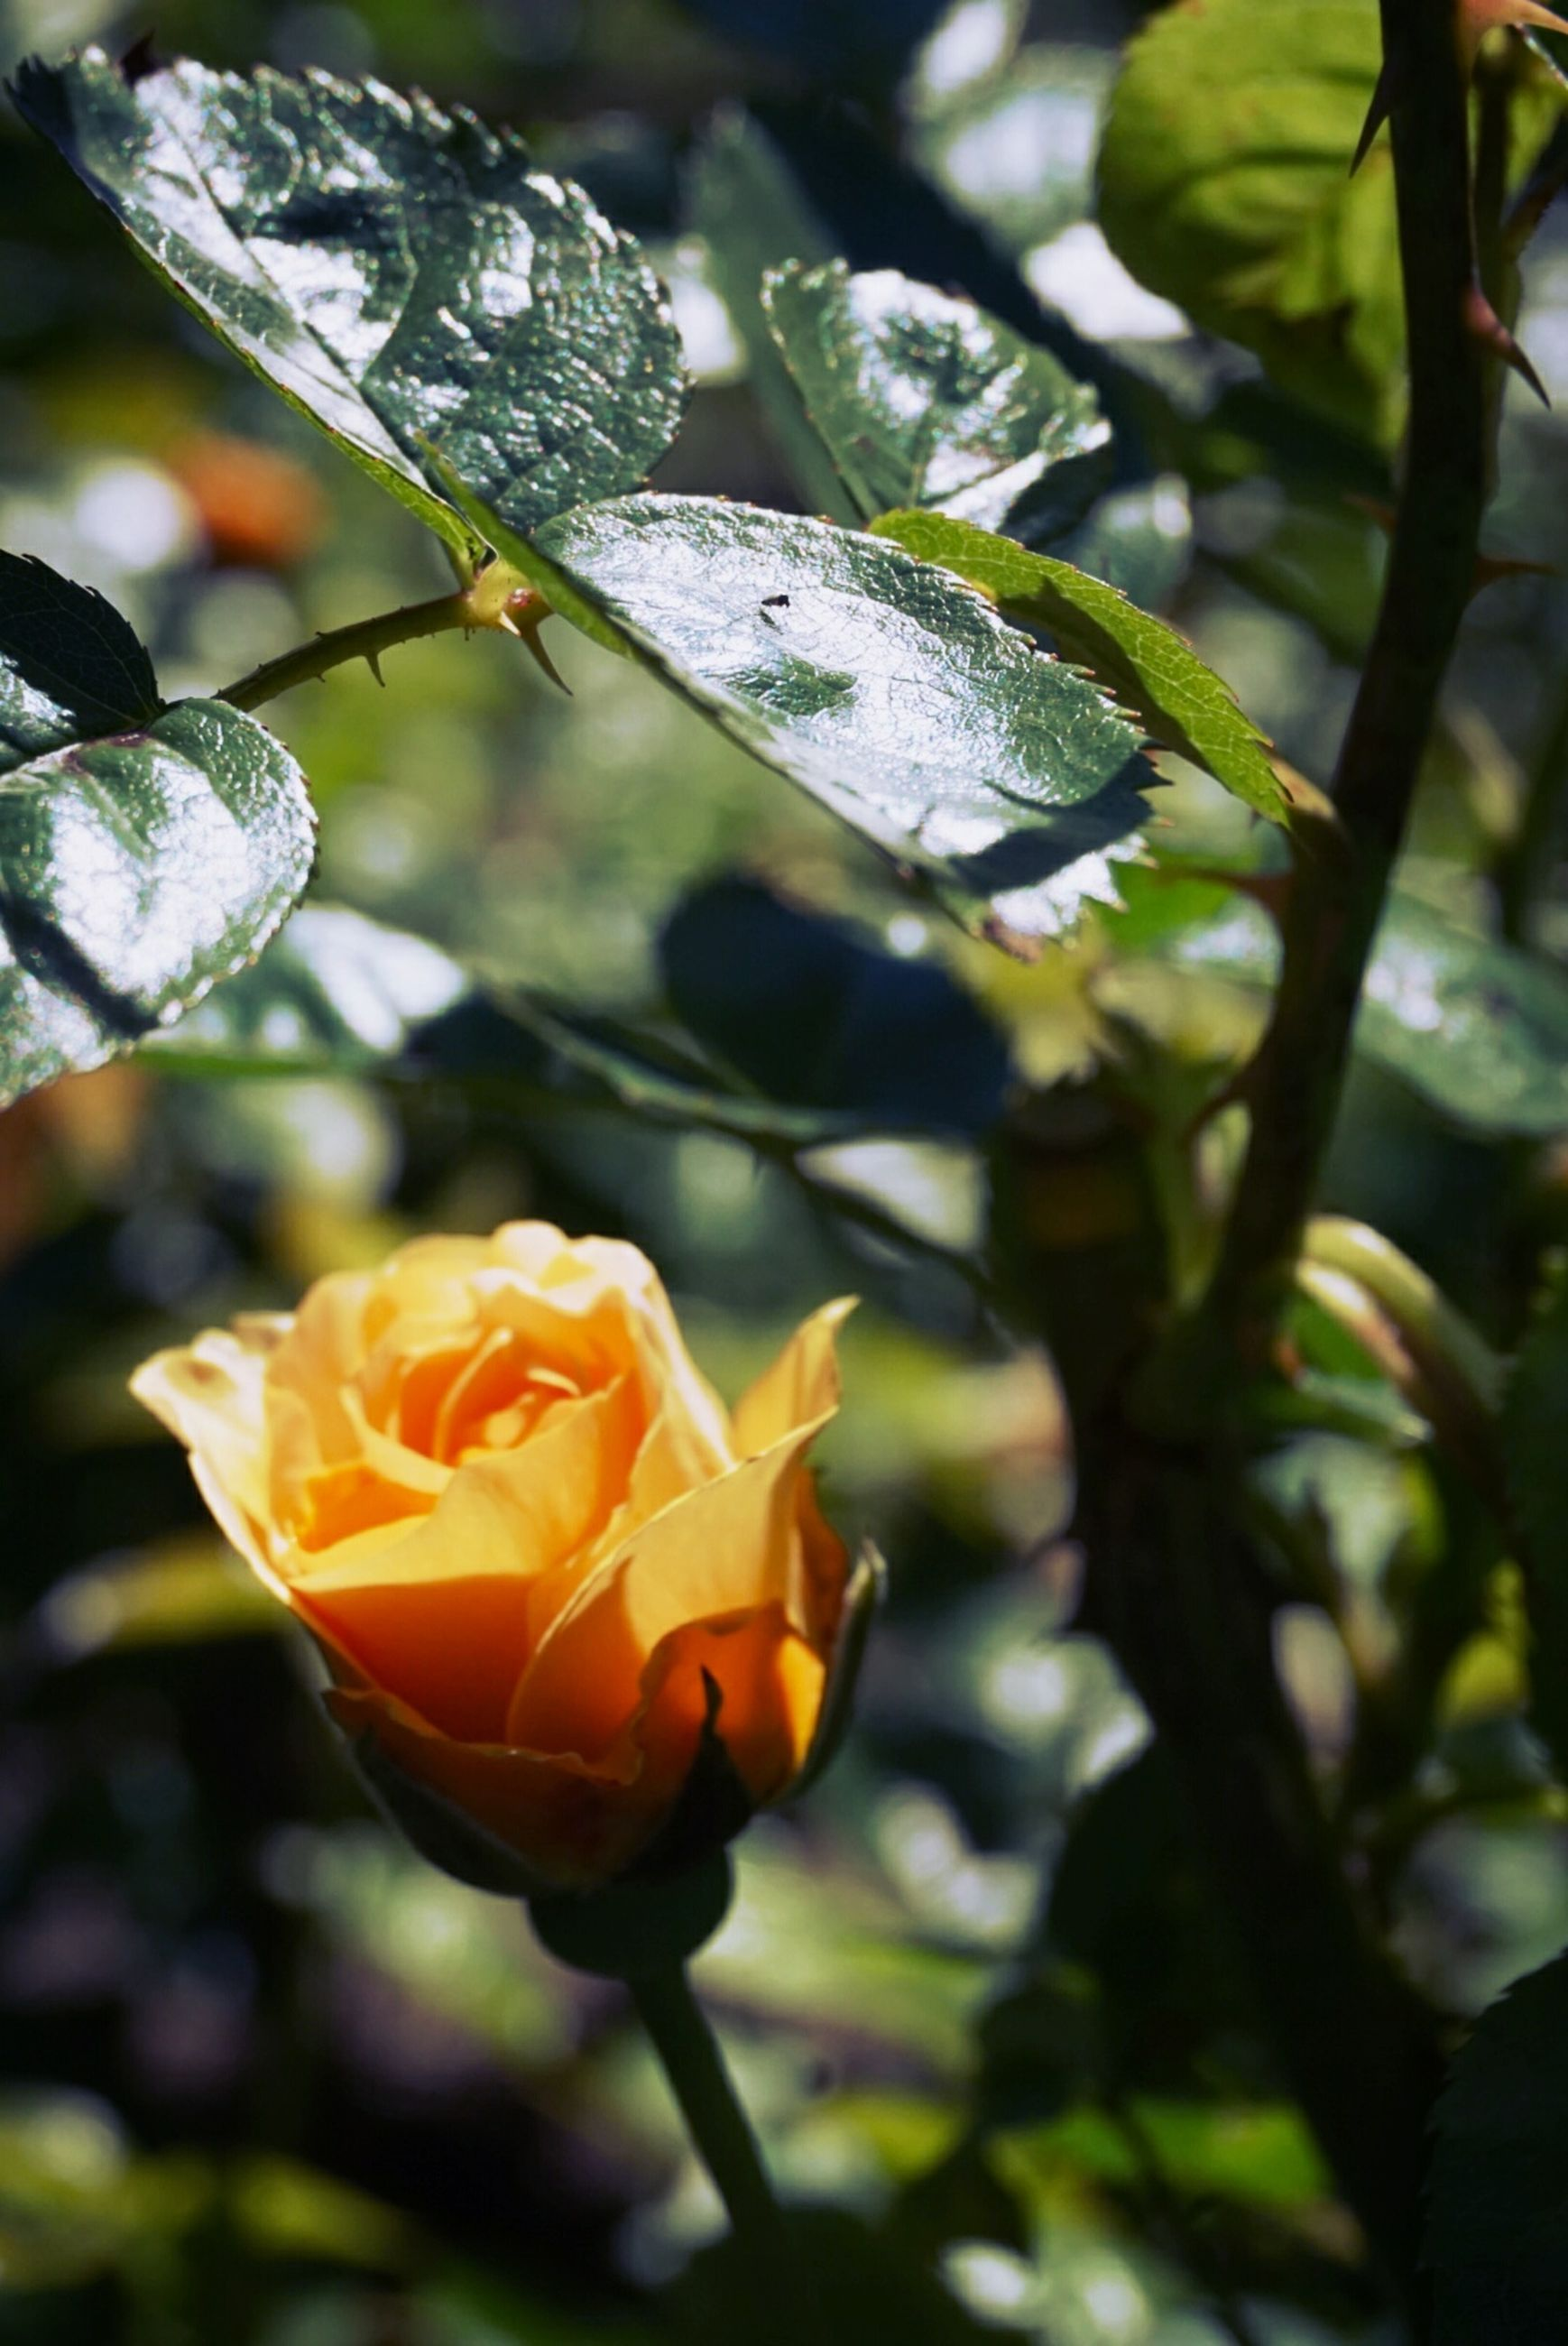 flower, petal, fragility, flower head, freshness, growth, focus on foreground, beauty in nature, close-up, blooming, plant, nature, rose - flower, orange color, in bloom, single flower, park - man made space, leaf, day, blossom